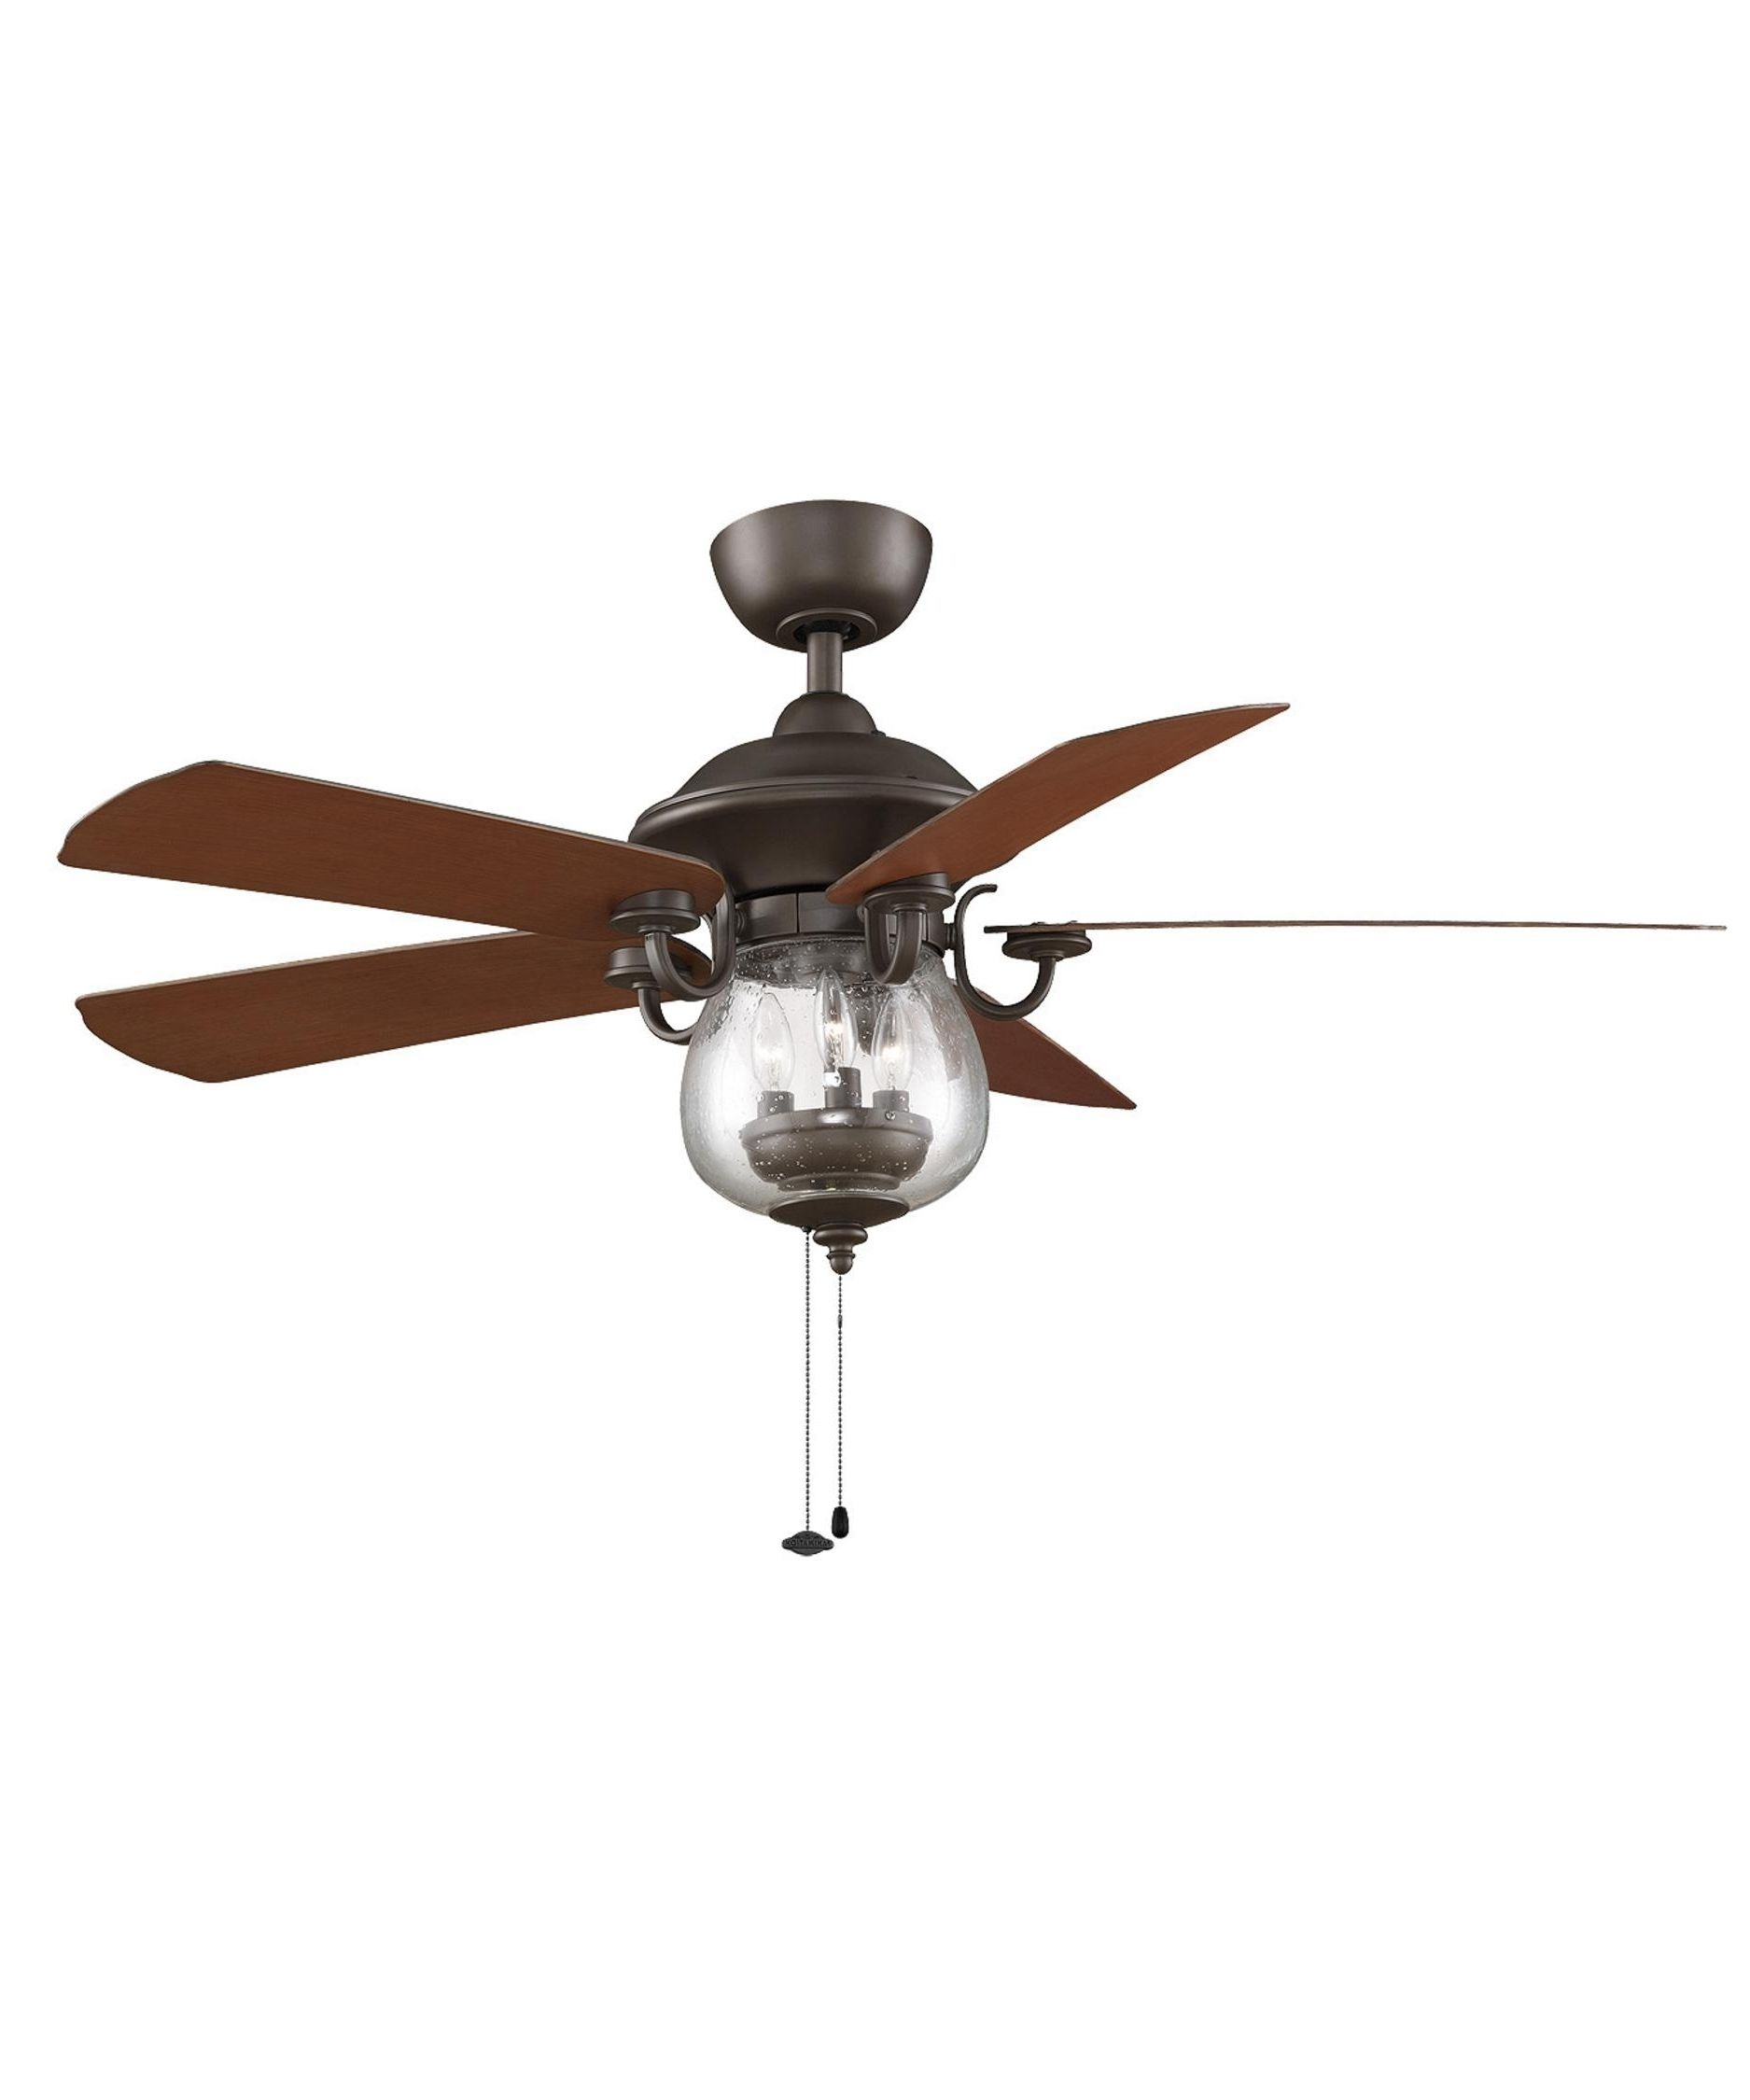 Hunter Ceiling Fan Light Kit Troubleshooting